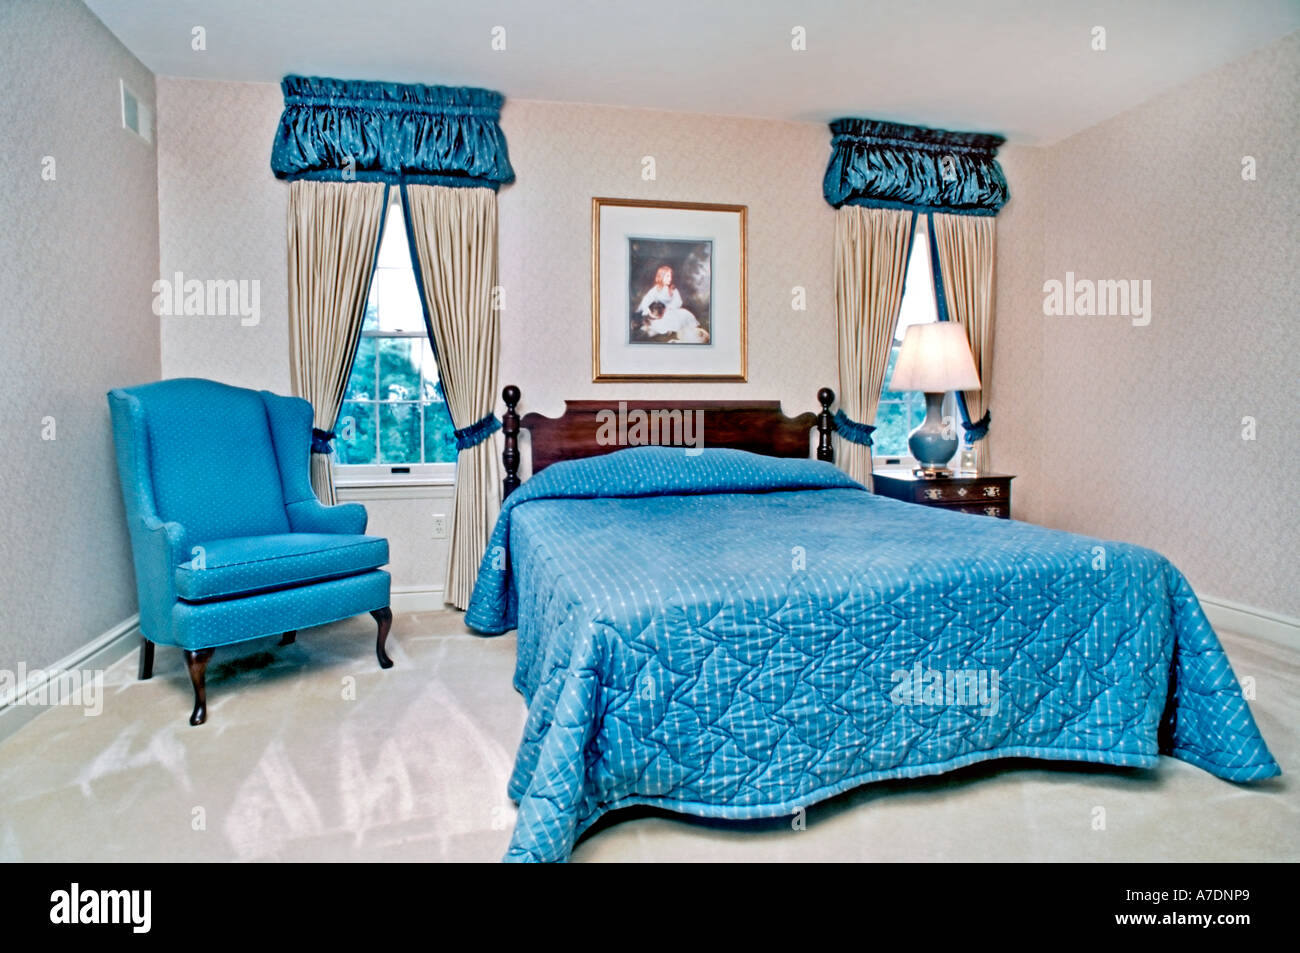 INVESTMENTS, House, USA Luxury Interior Showcase Home Comfortable Master Bedroom, Interior  Design, King Size Bed, suburban house - Stock Image